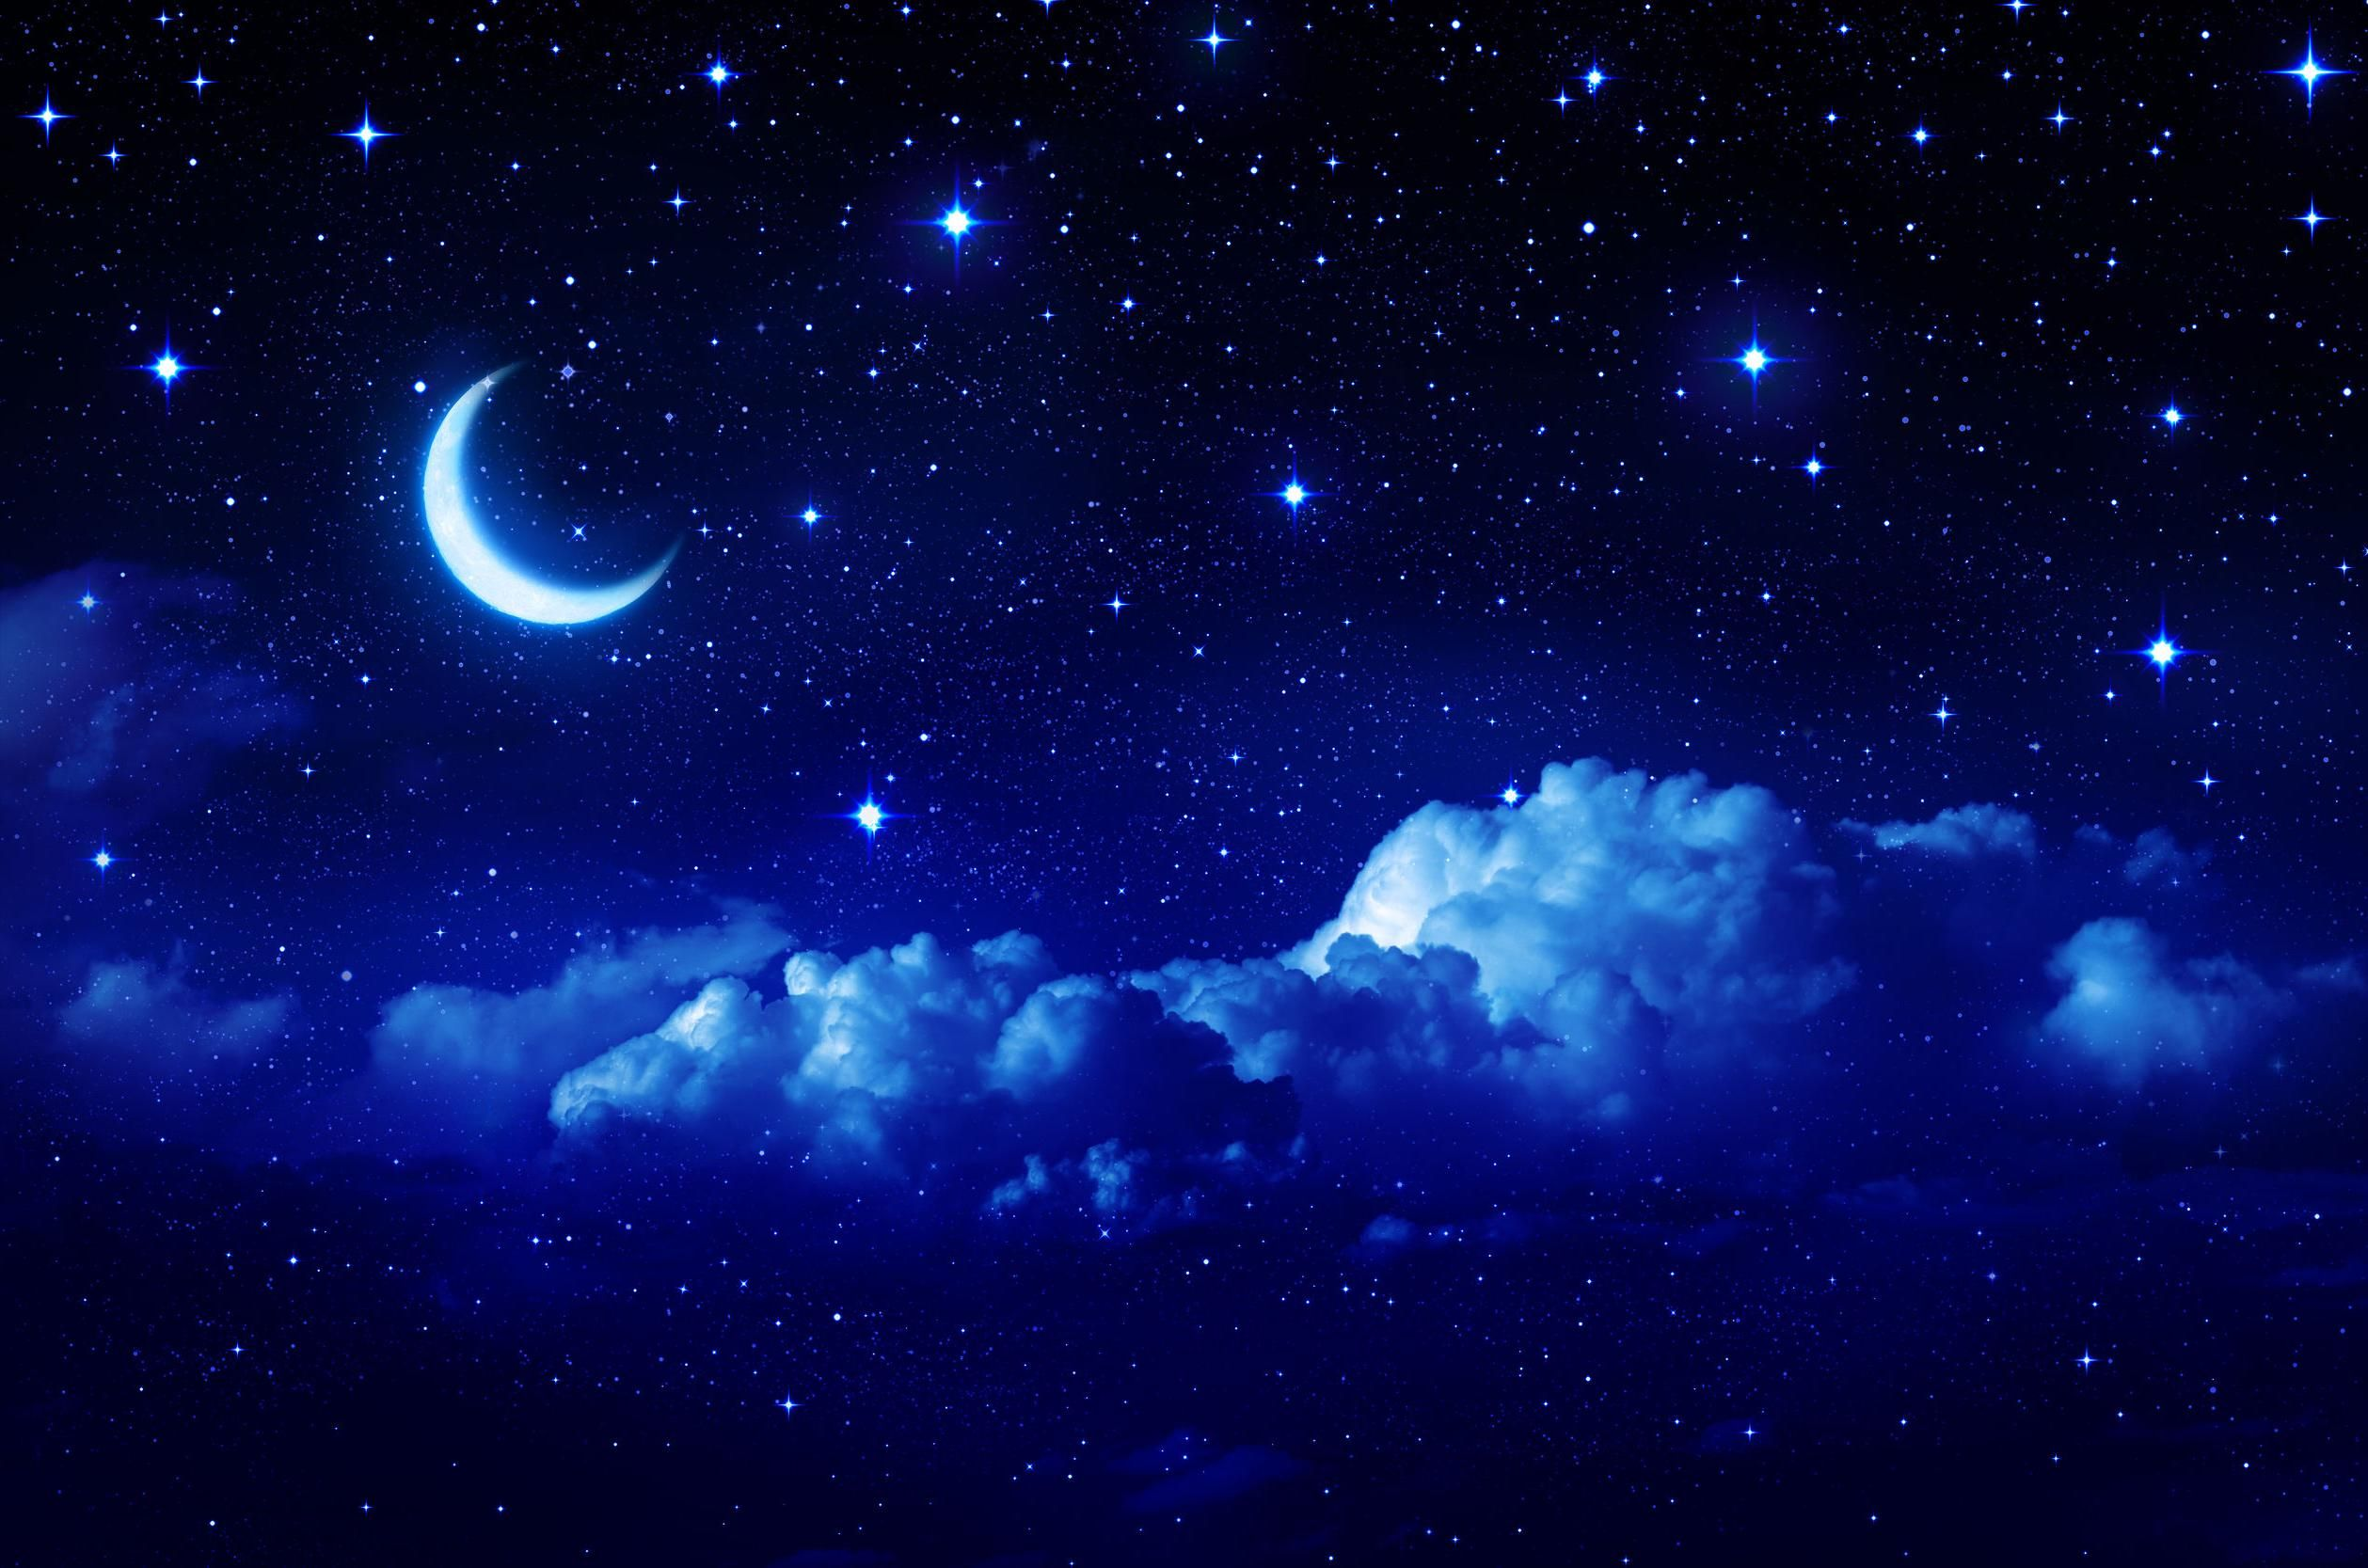 Blue Night Sky Wallpaper Free Download With Images Night Sky